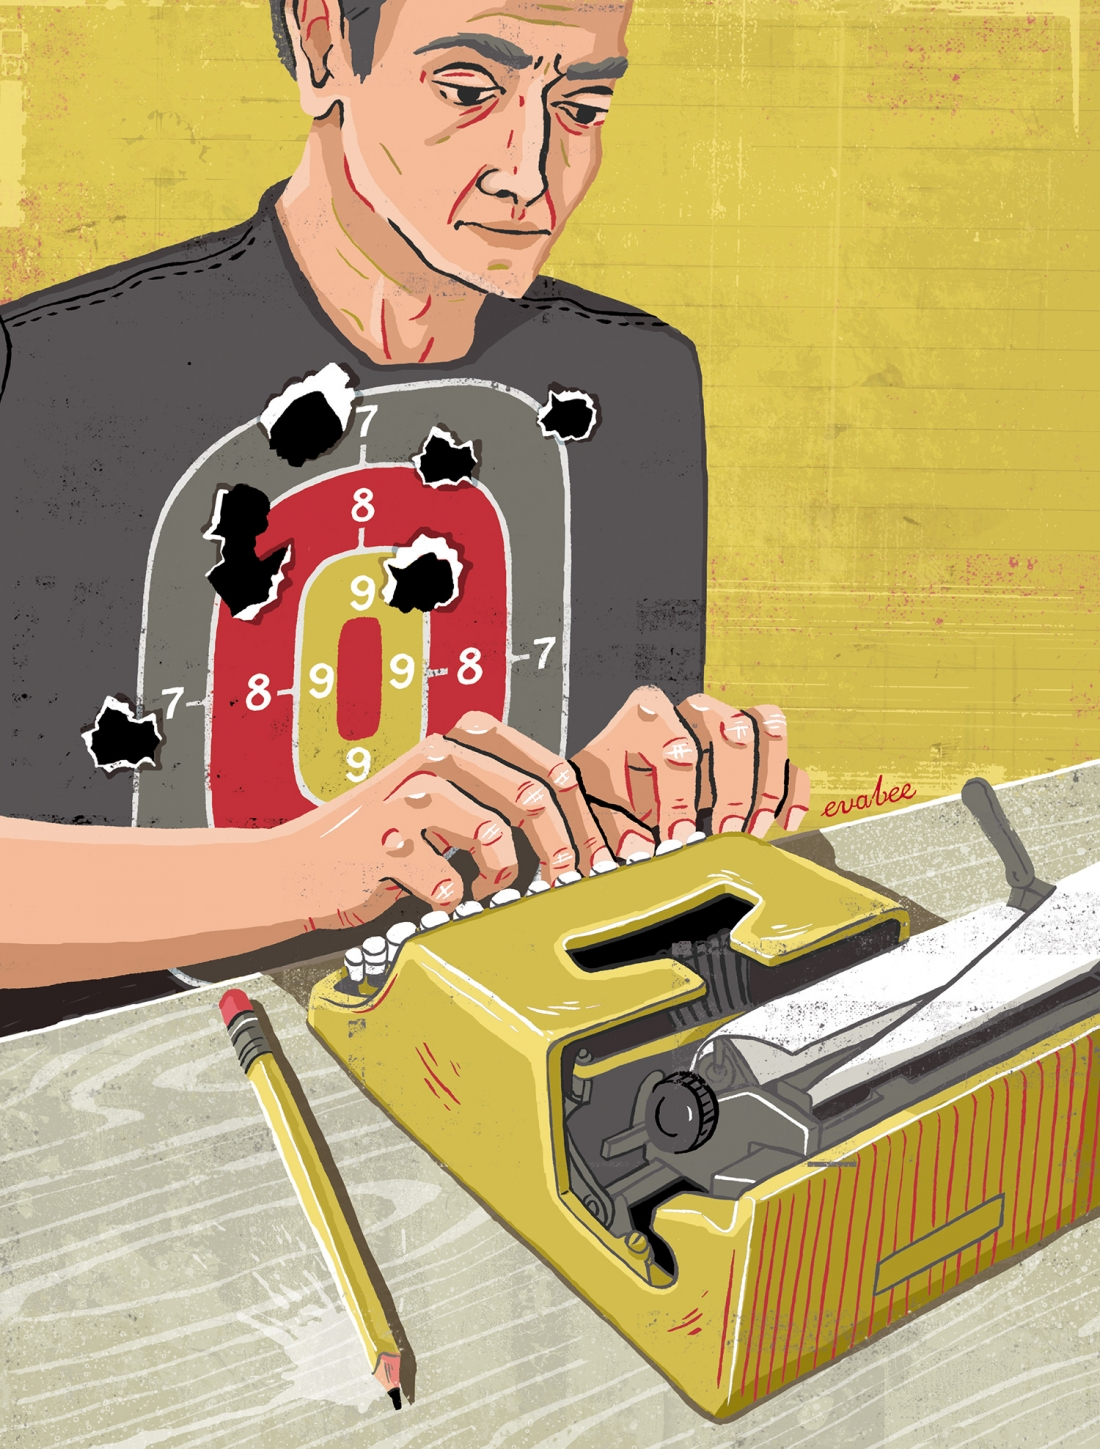 Index on Censorship: Editorial Illustration